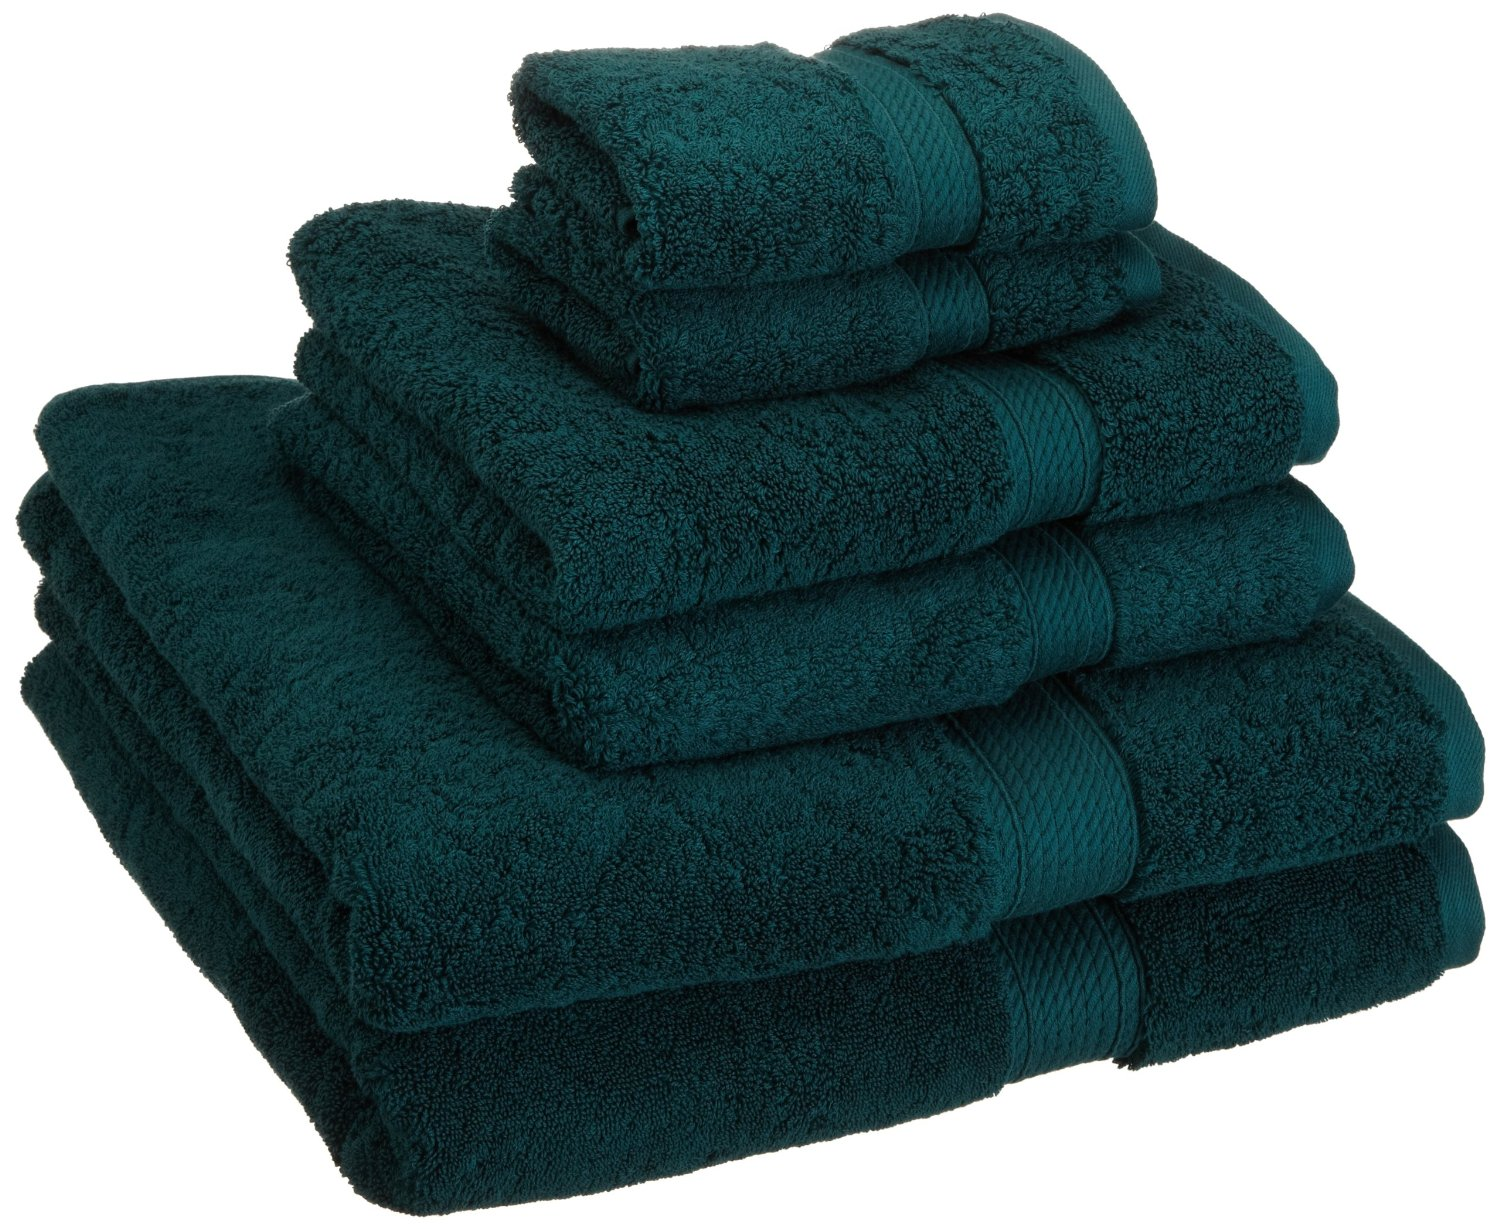 Luxury 900gsm 100 egyptian cotton 6 piece towel set ebay for Teal bath sets